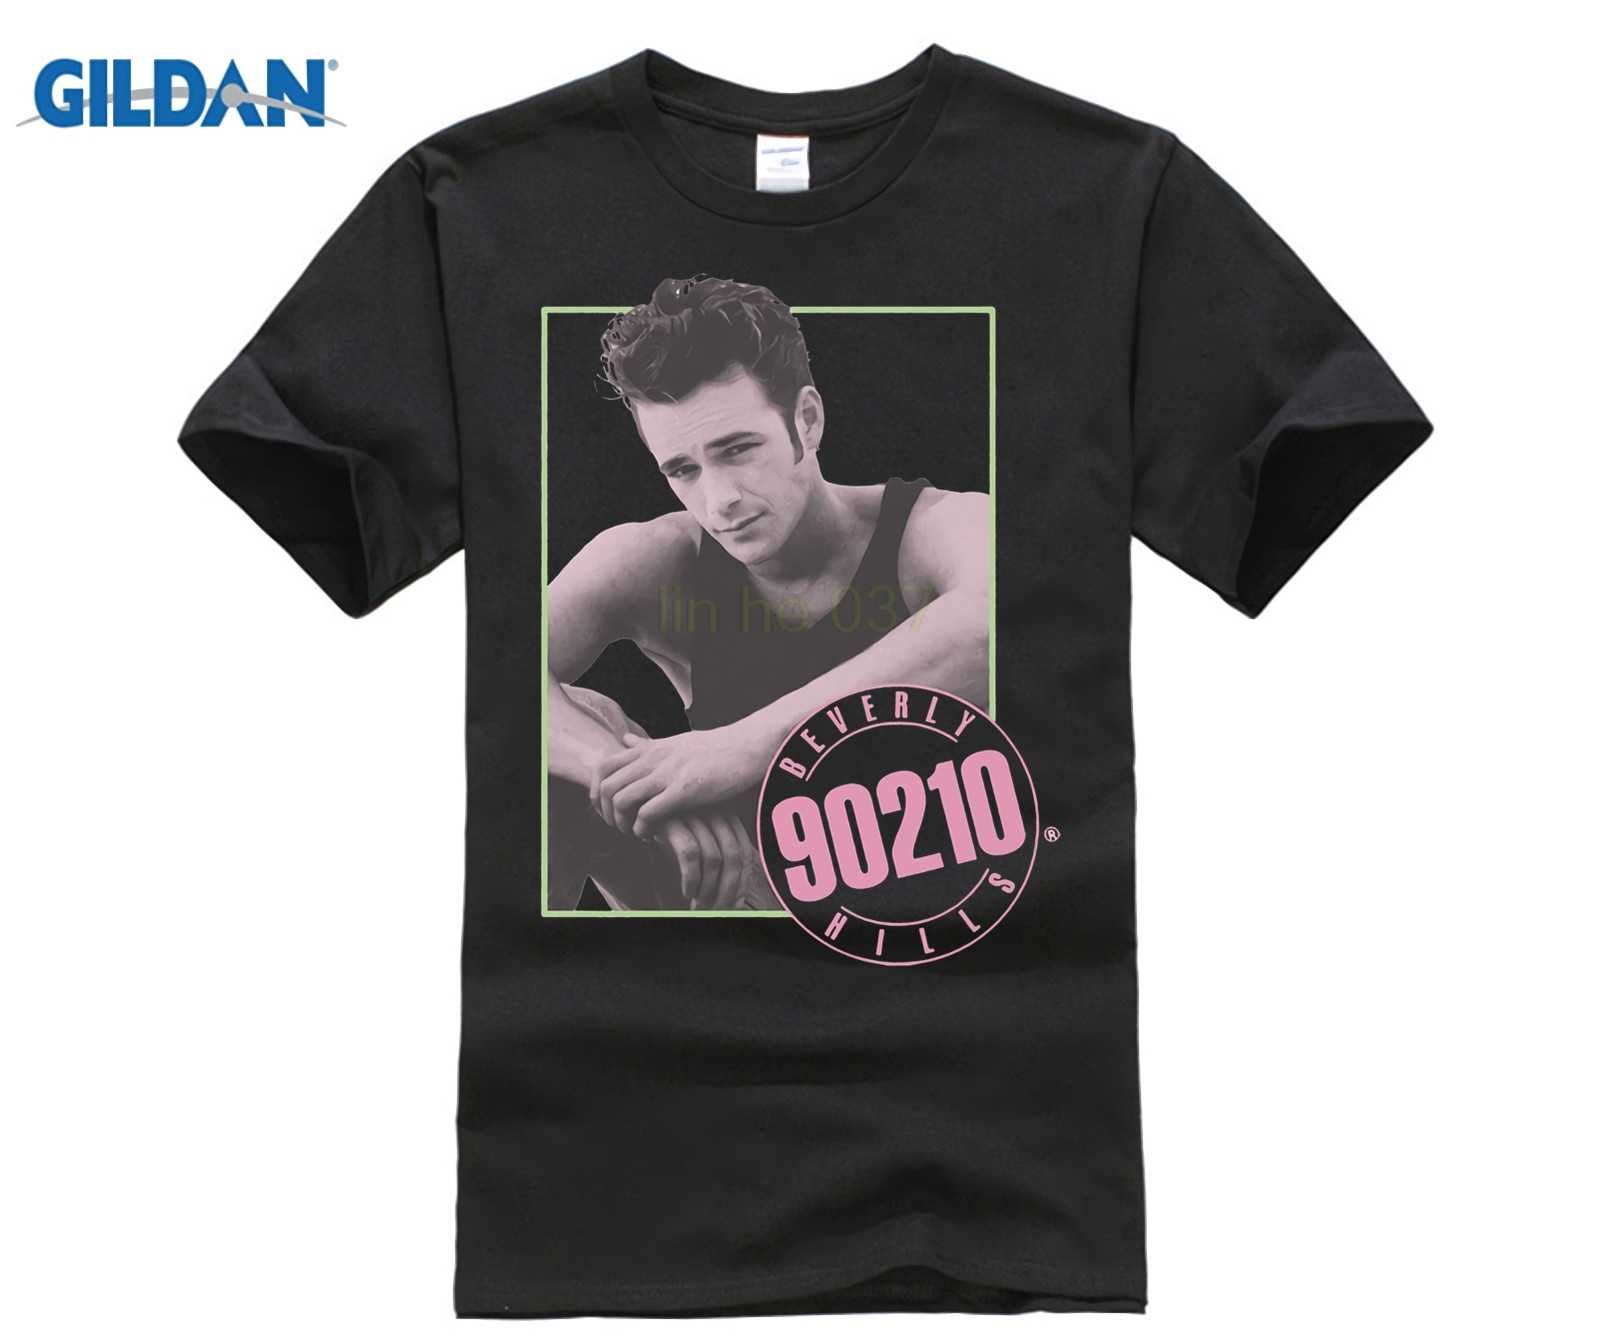 290a8ab0b Gildan Beverly Hills 90210 Tv Show Dylan Mckay Luke Perry Picture Adult  Men'S Crew Neck Short